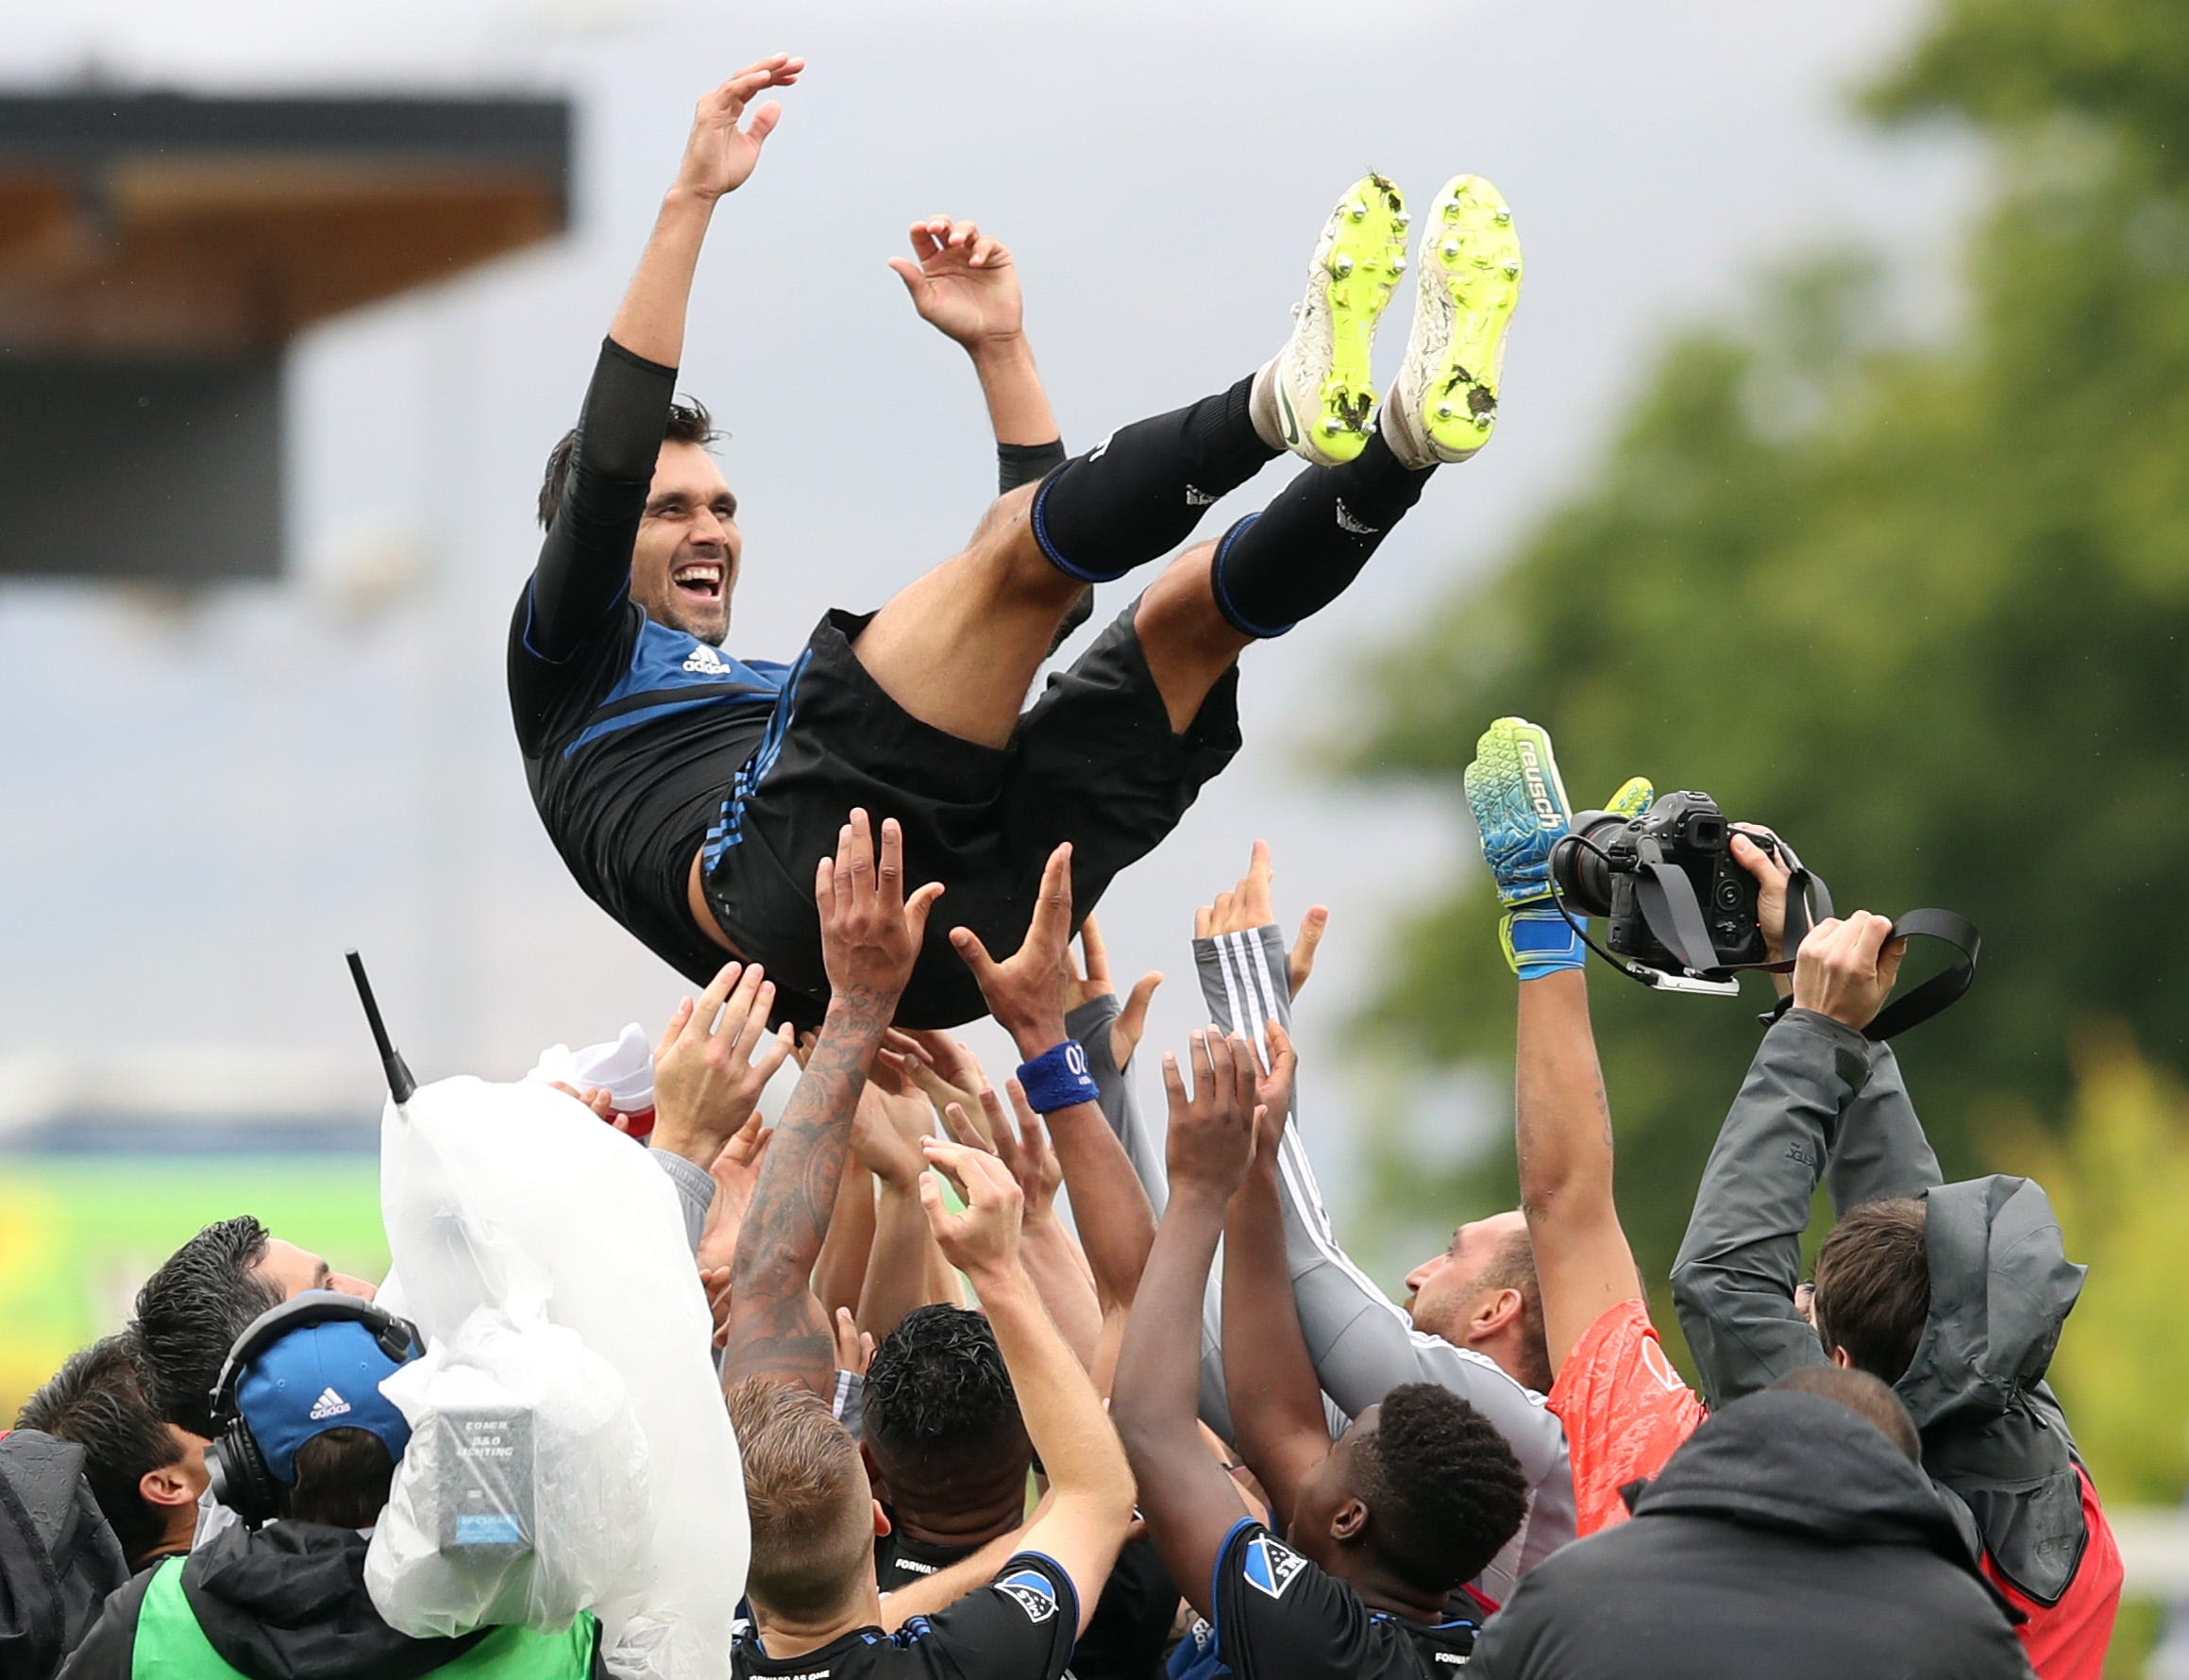 San Jose Earthquakes' Chris Wondolowski breaks Landon Donovan's MLS goals scored record